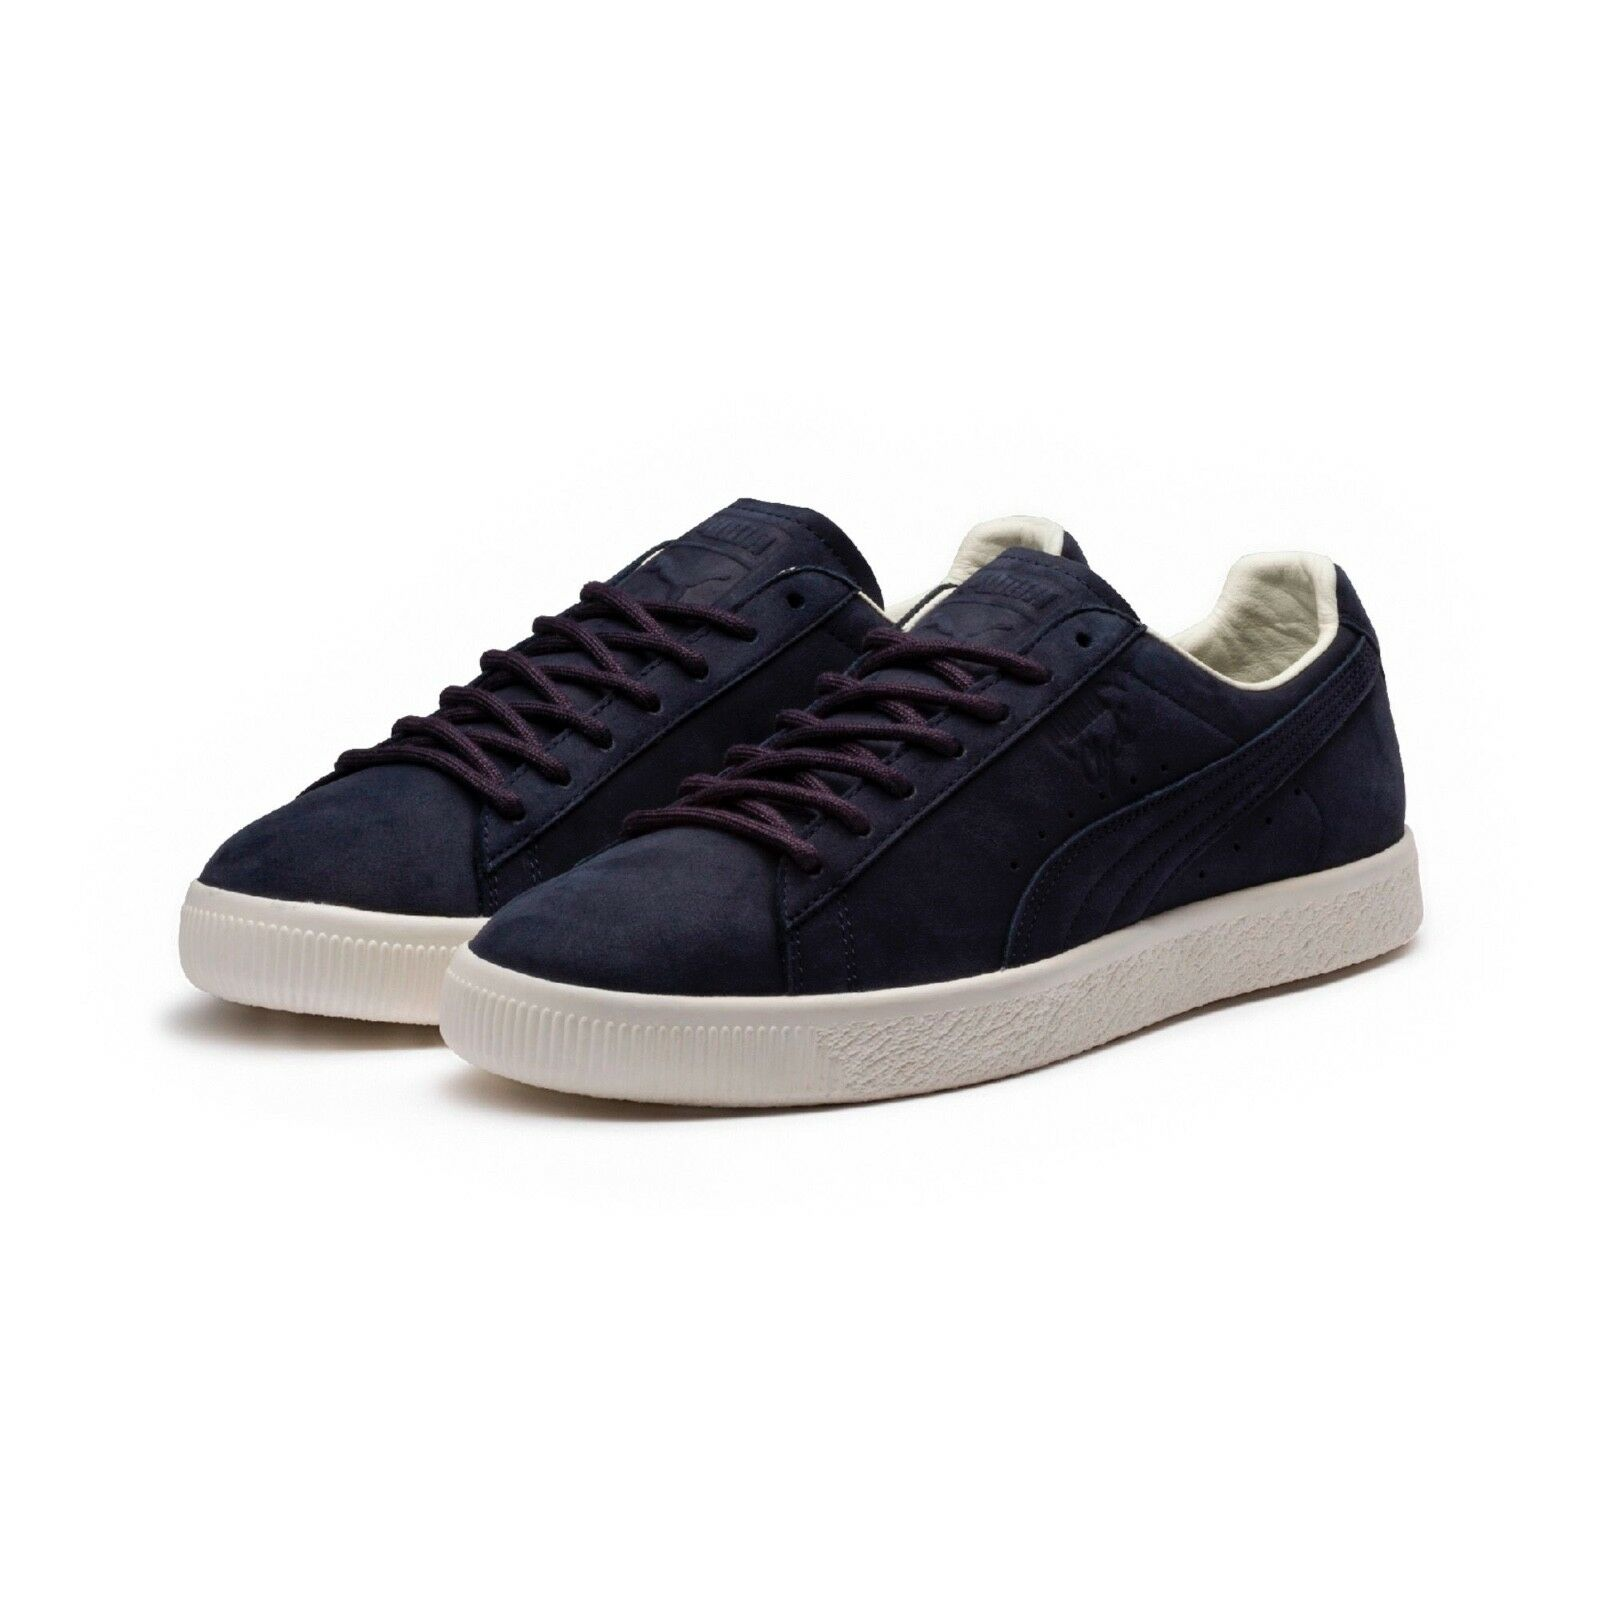 dee0db0b057 Puma The Clyde Style   363835-01 Clyde Frosted Legend Classic Sneakers.  Style  363835-01. Color  Night Sky-Night Sky